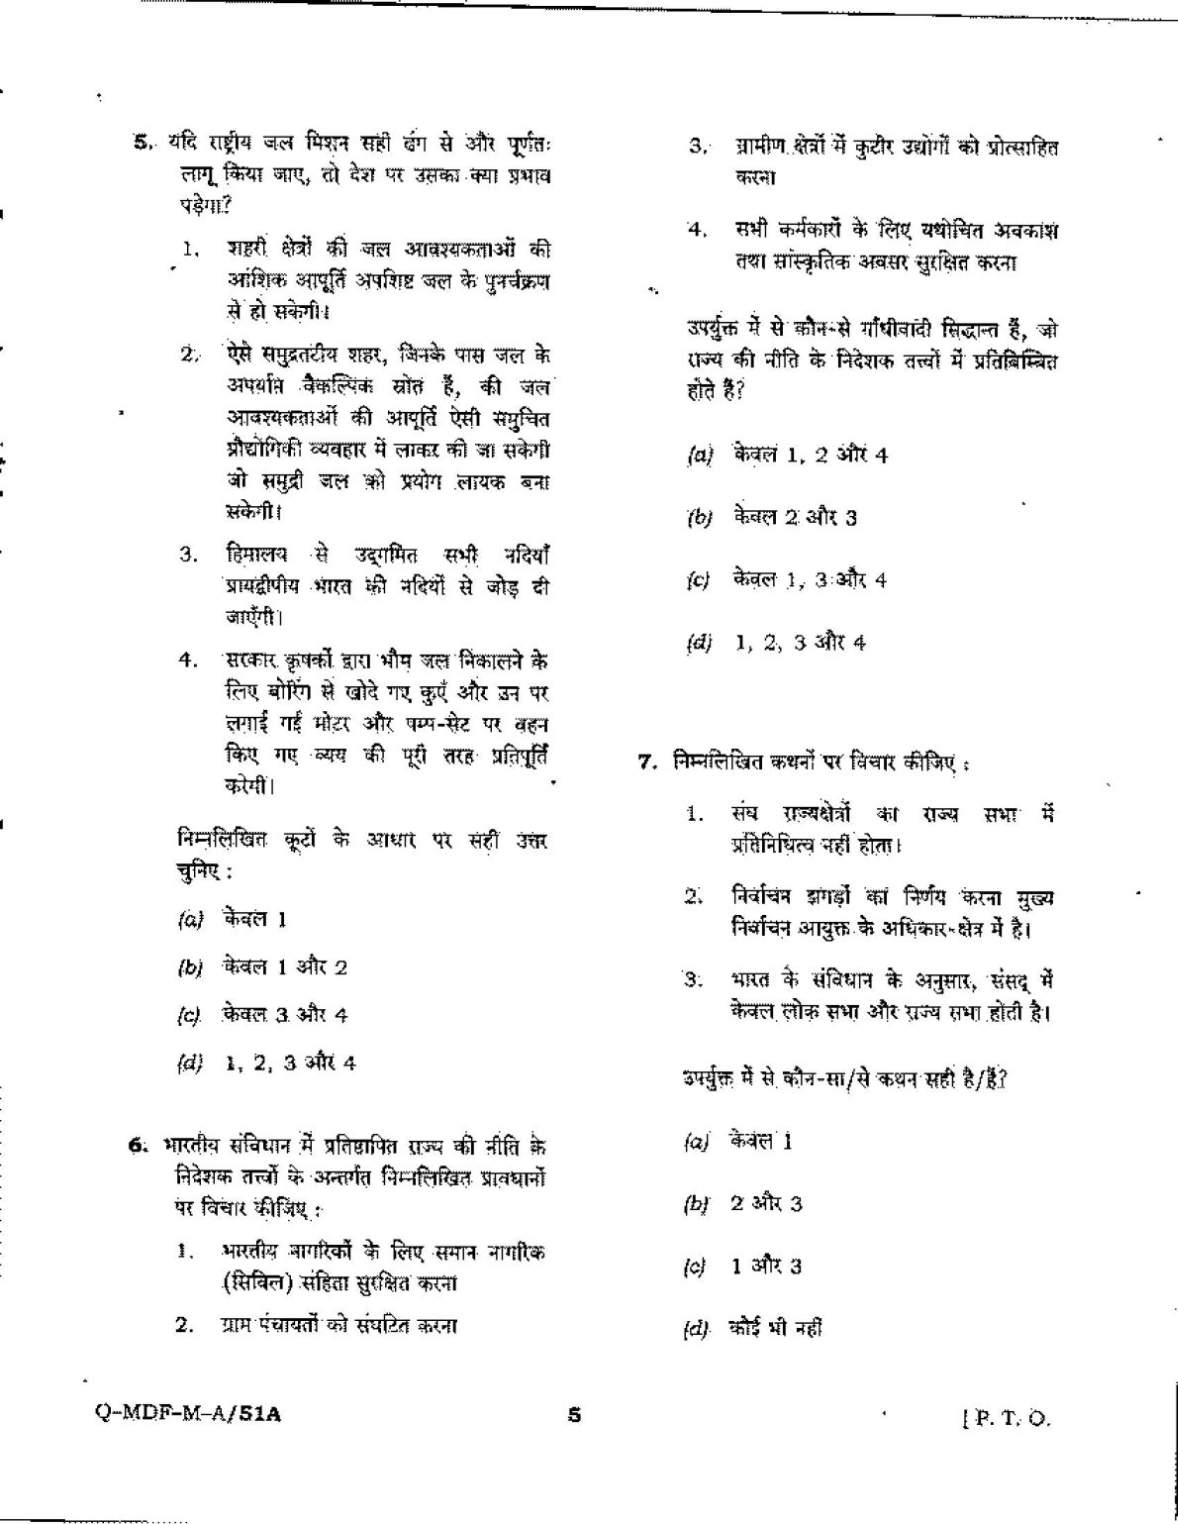 Images of Eligibility For Civil Service Exam